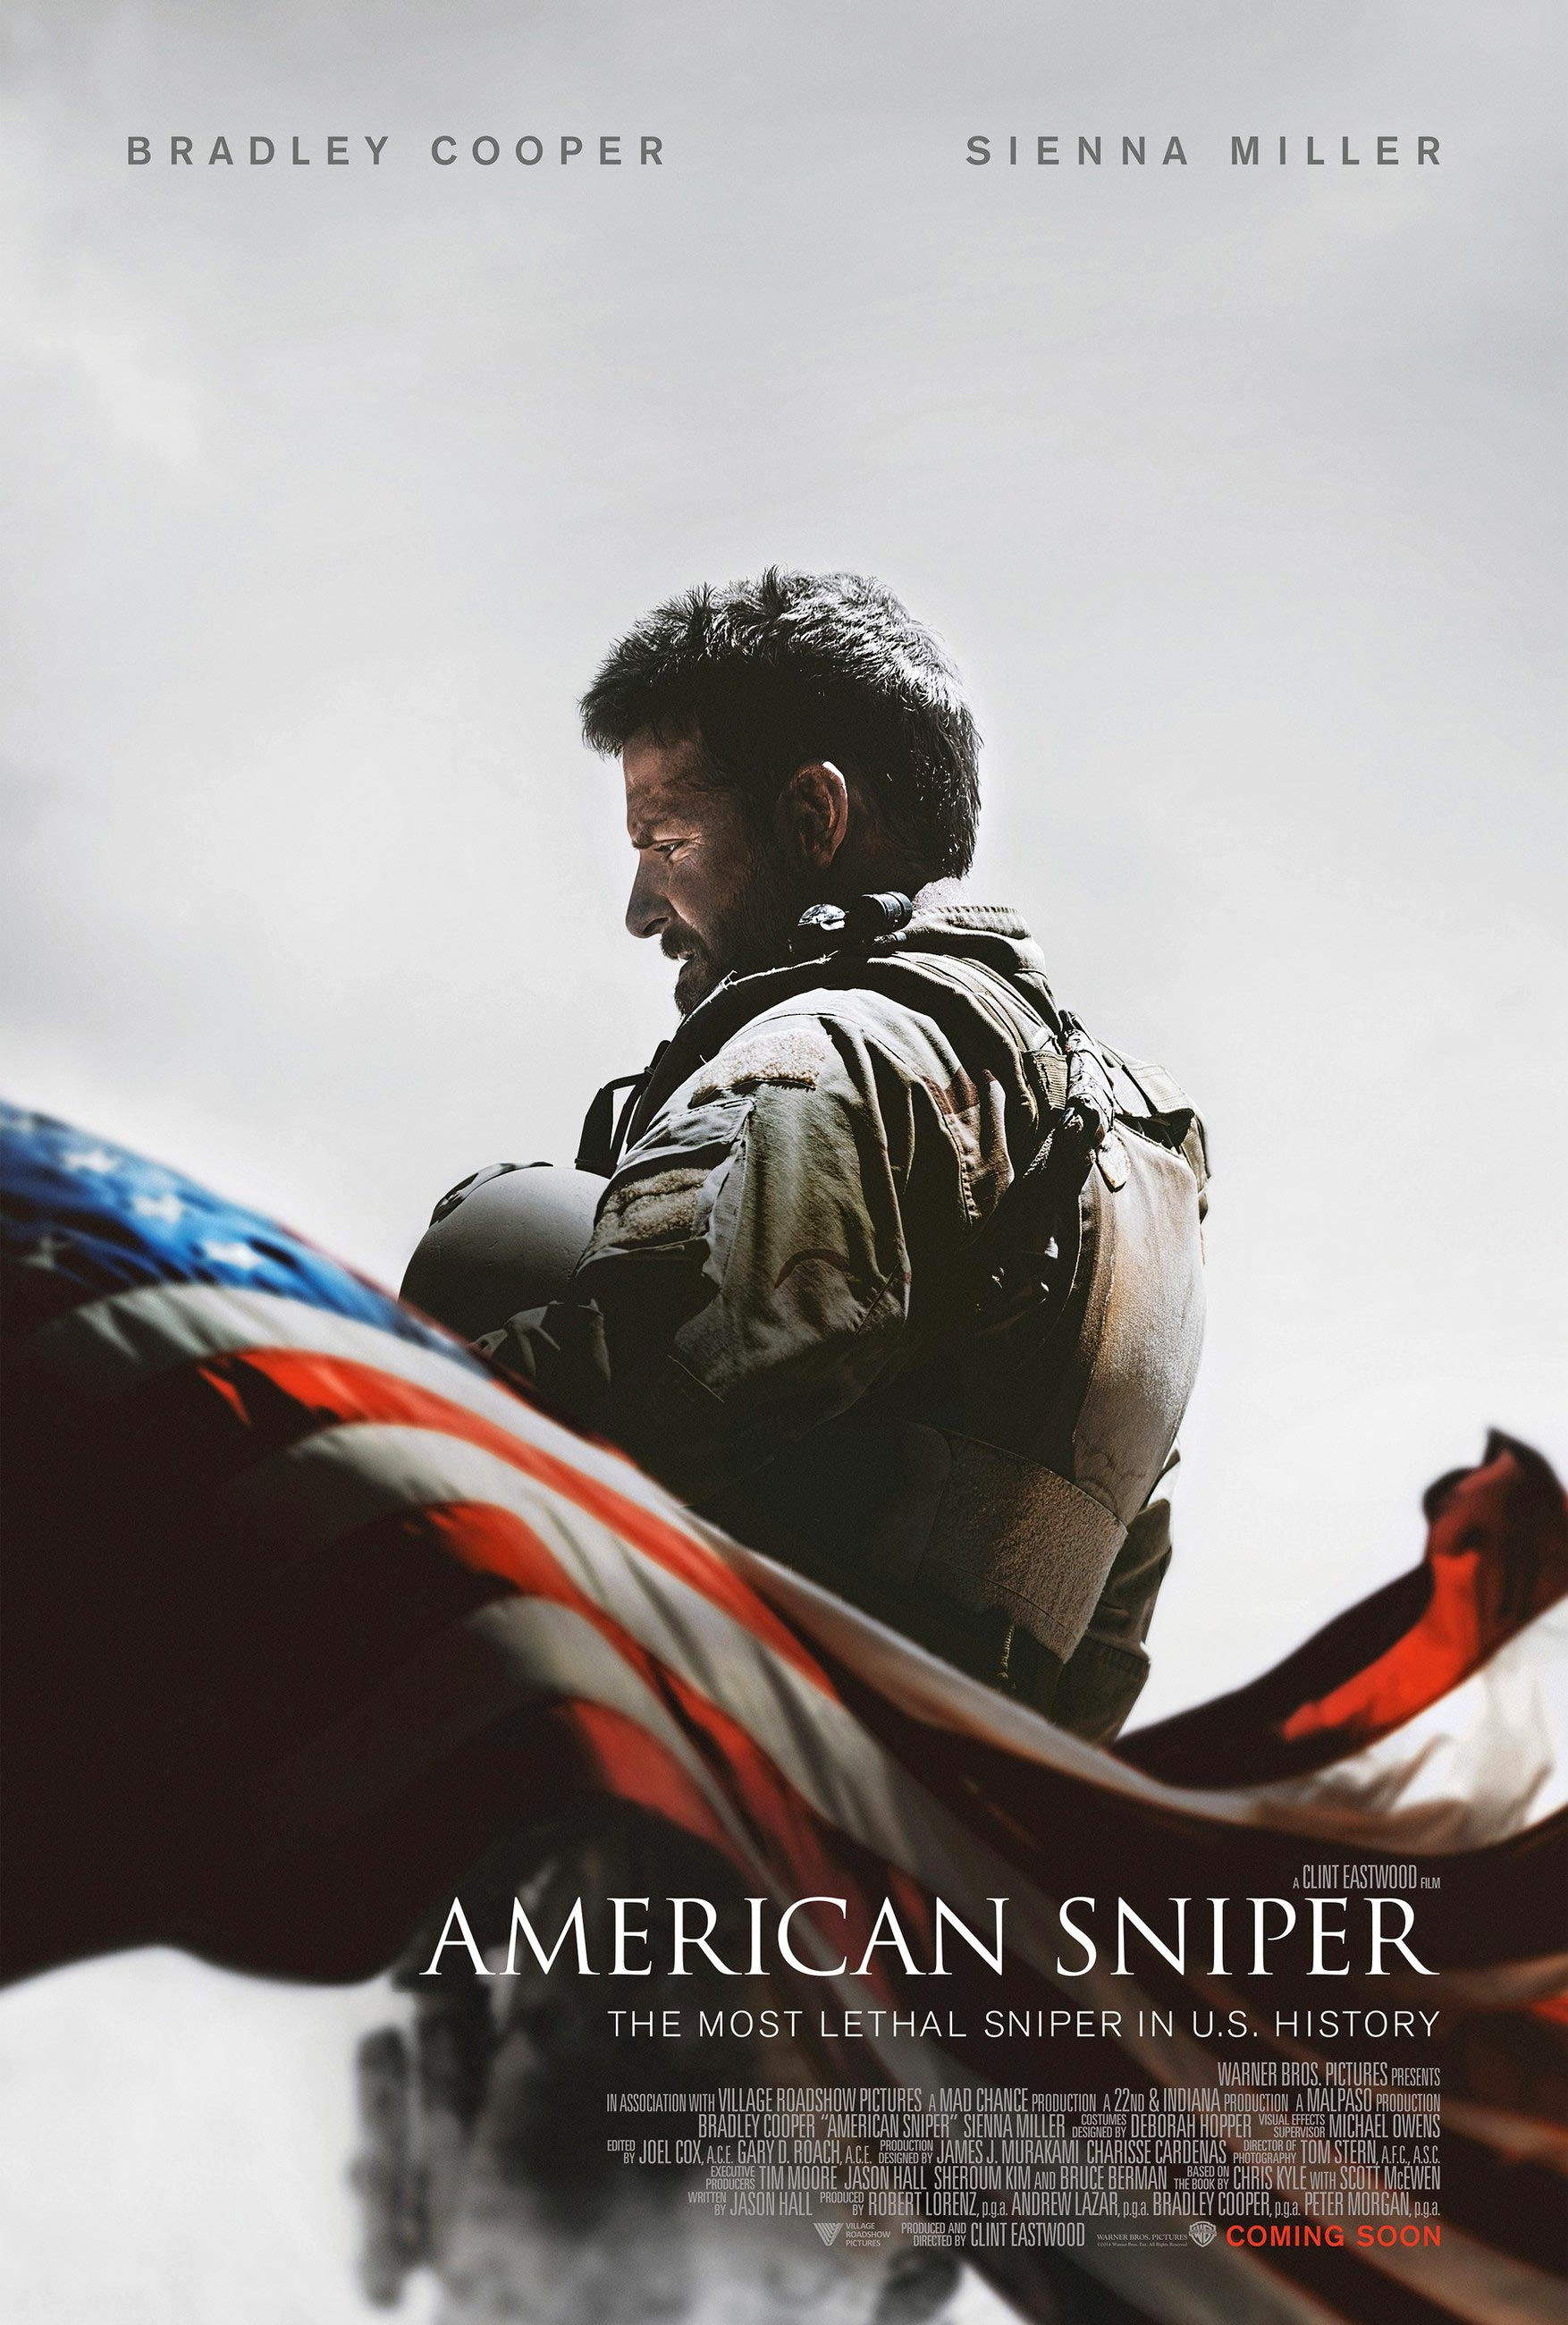 Ford Of Franklin >> AMERICAN SNIPER Trailer - Clint Eastwood's Film Starring ...